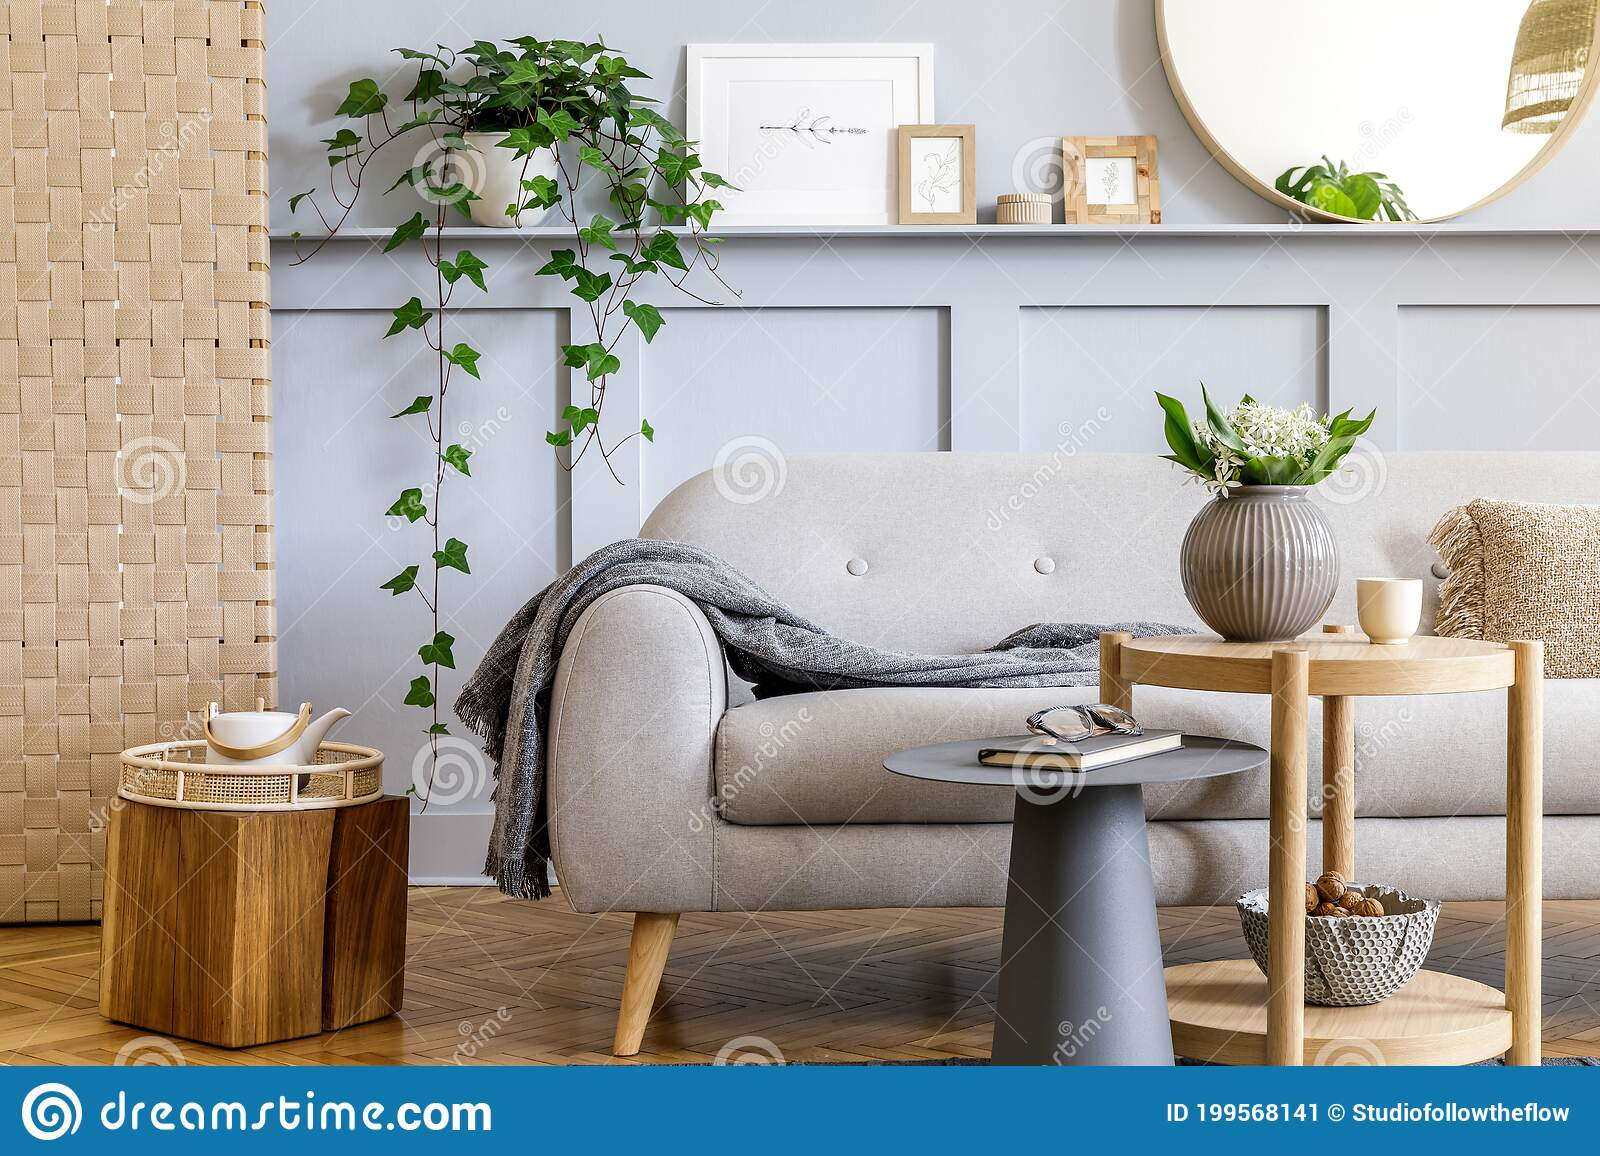 Scandinavian Living Room Interior With Design Grey Sofa Wooden Coffee Table Tropical Plants Shelf Mirror Furniture Plaid Stock Image Image Of Frontal Indoors 199568141